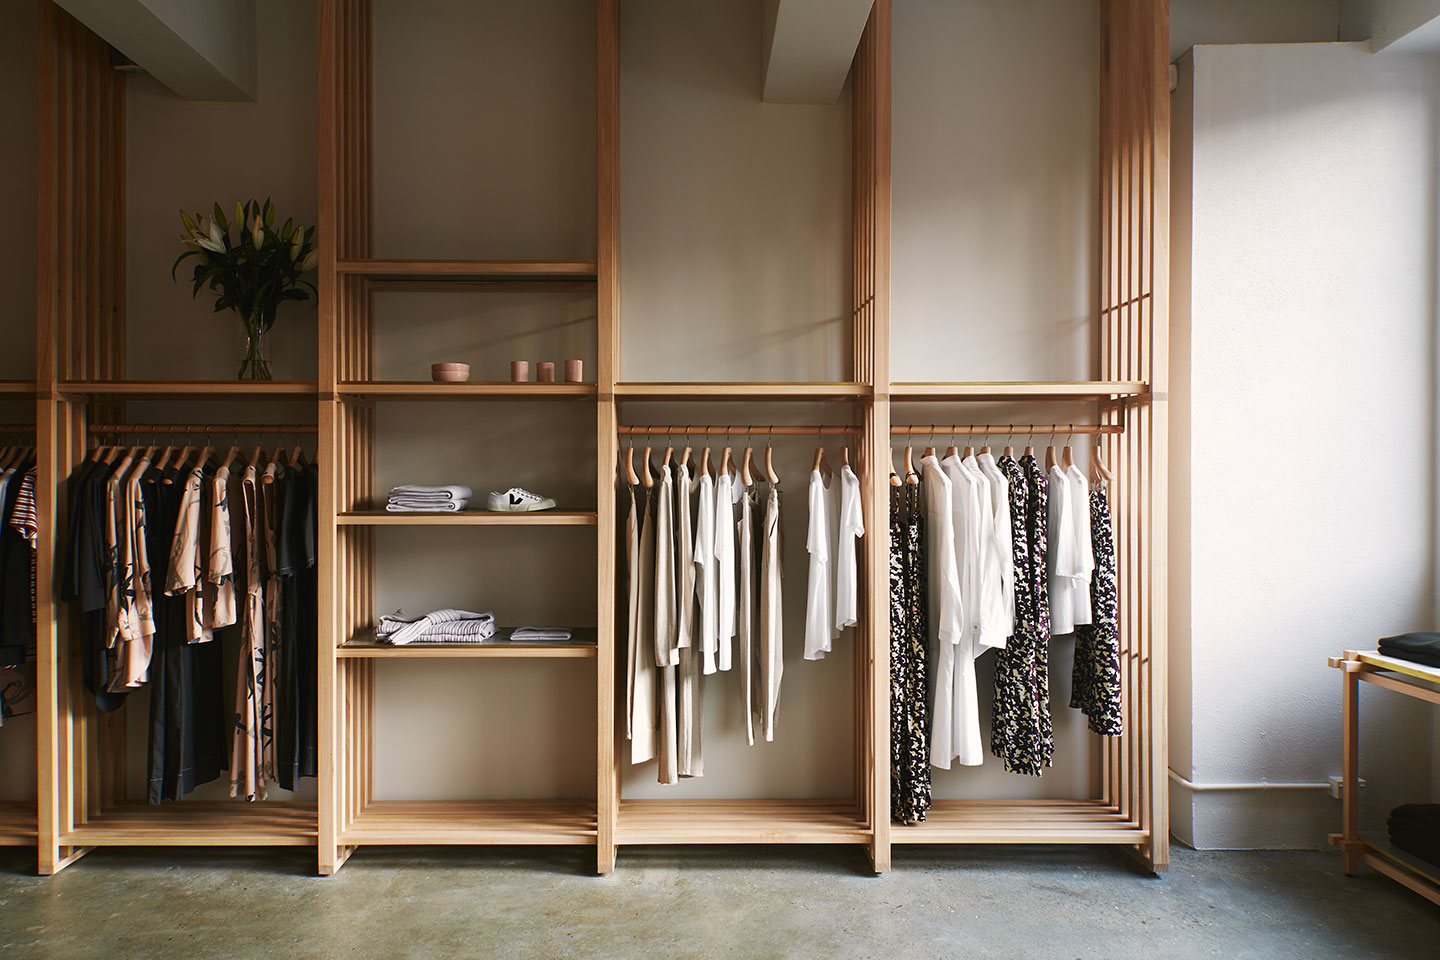 05_Kowtow_Flagship_Makers-of-Architecture